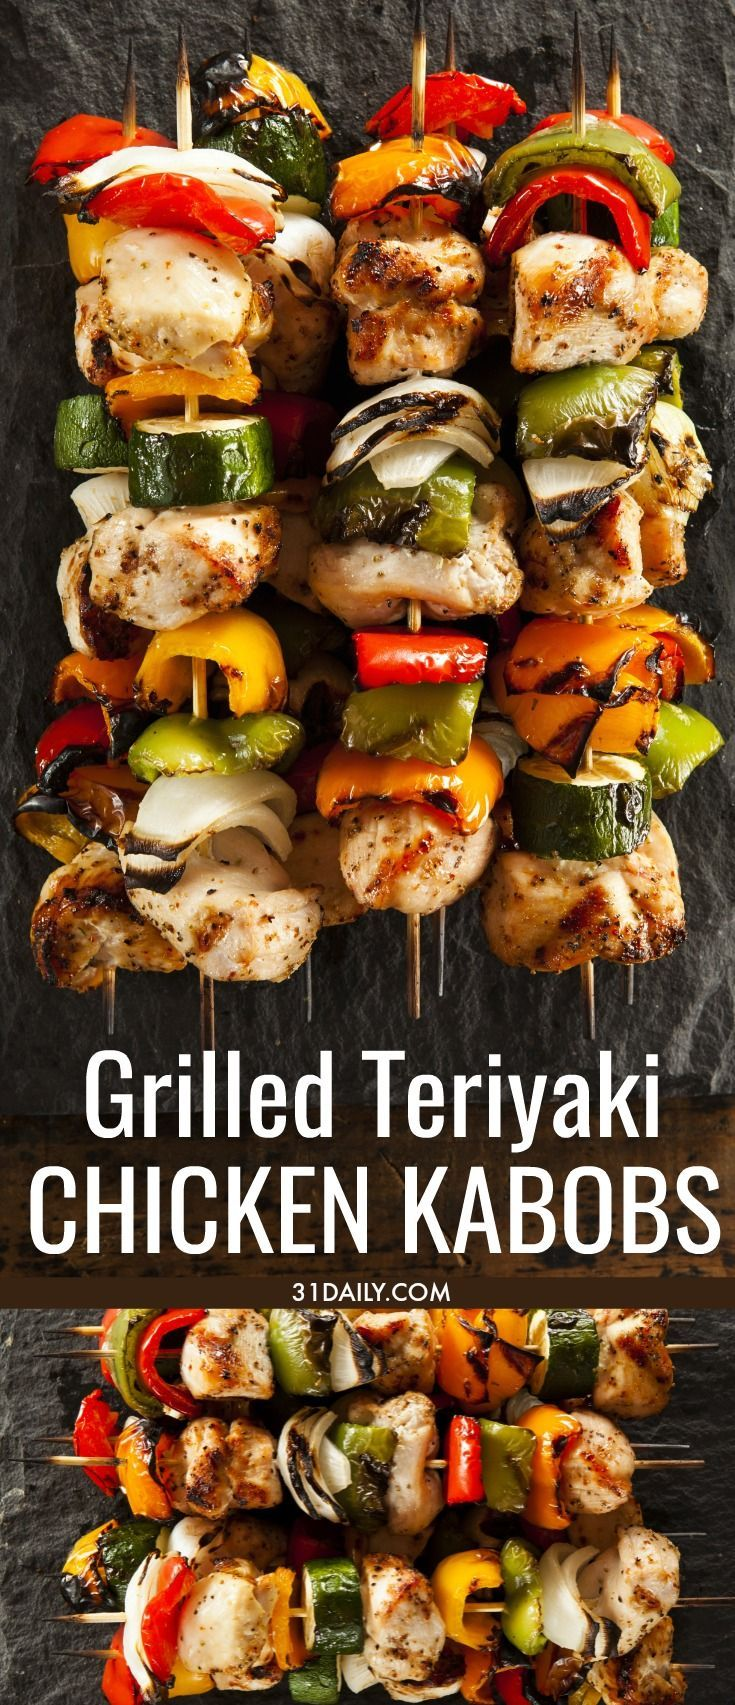 Grilled Teriyaki Chicken Kabobs - 31 Daily